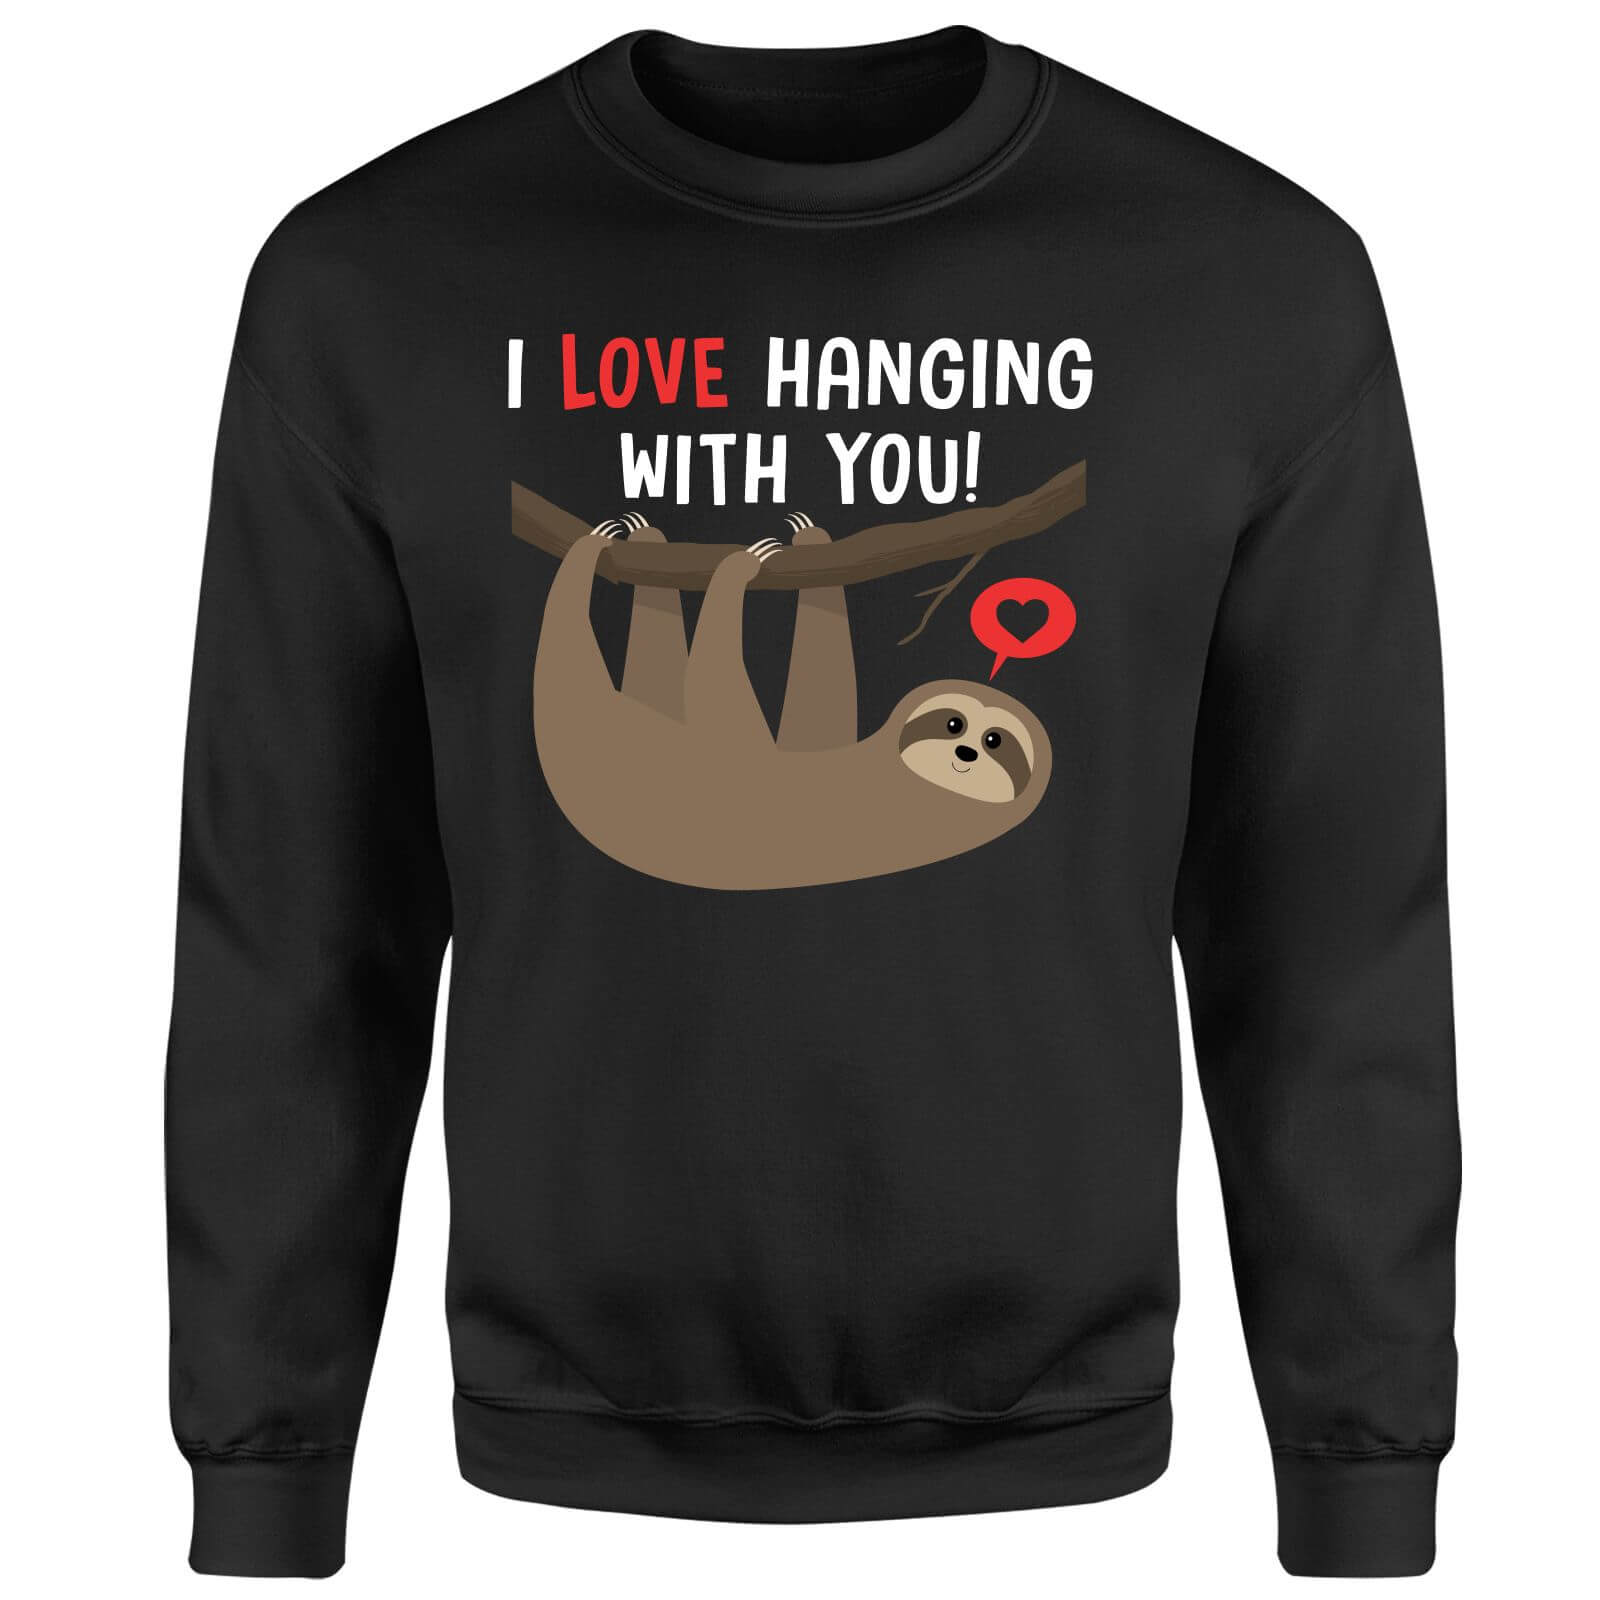 I Love Hanging With You Sweatshirt - Black